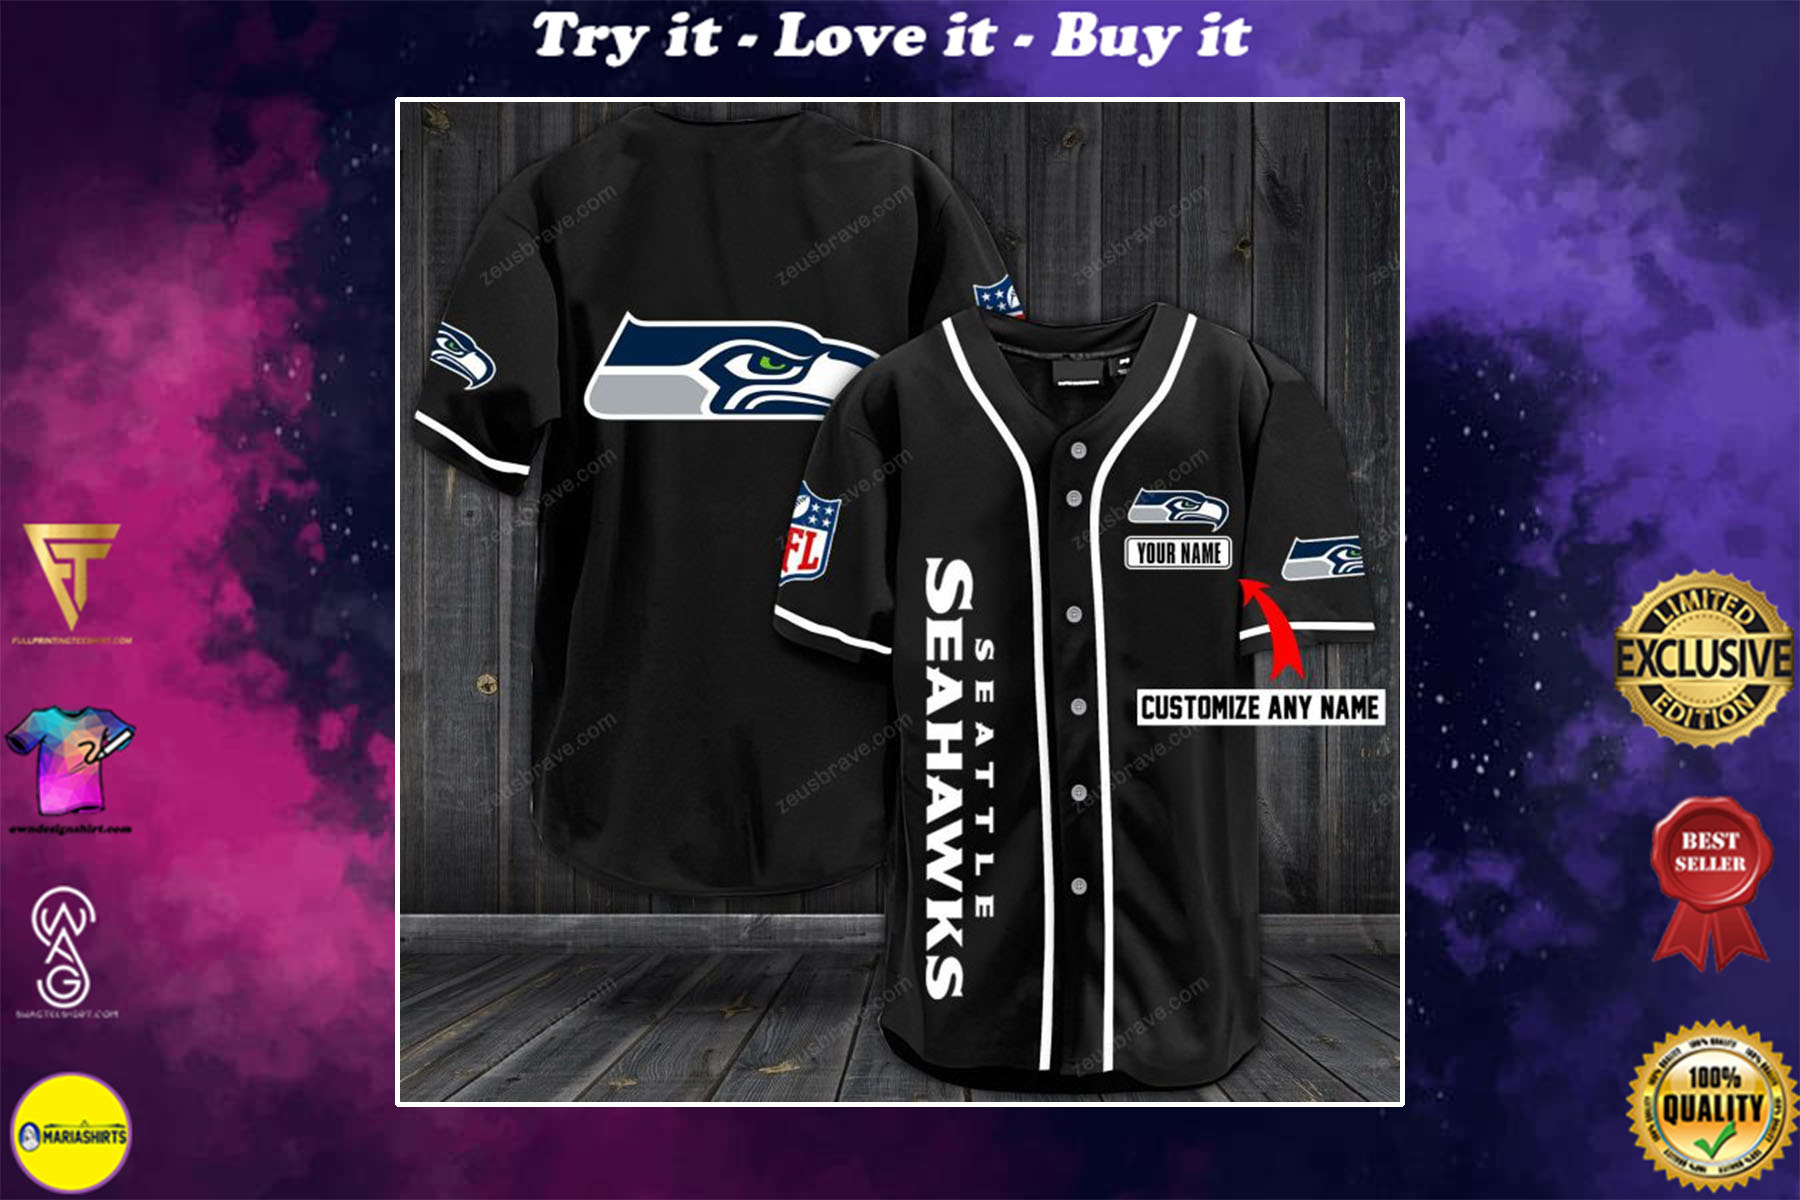 [special edition] custom name jersey seattle seahawks shirt - maria